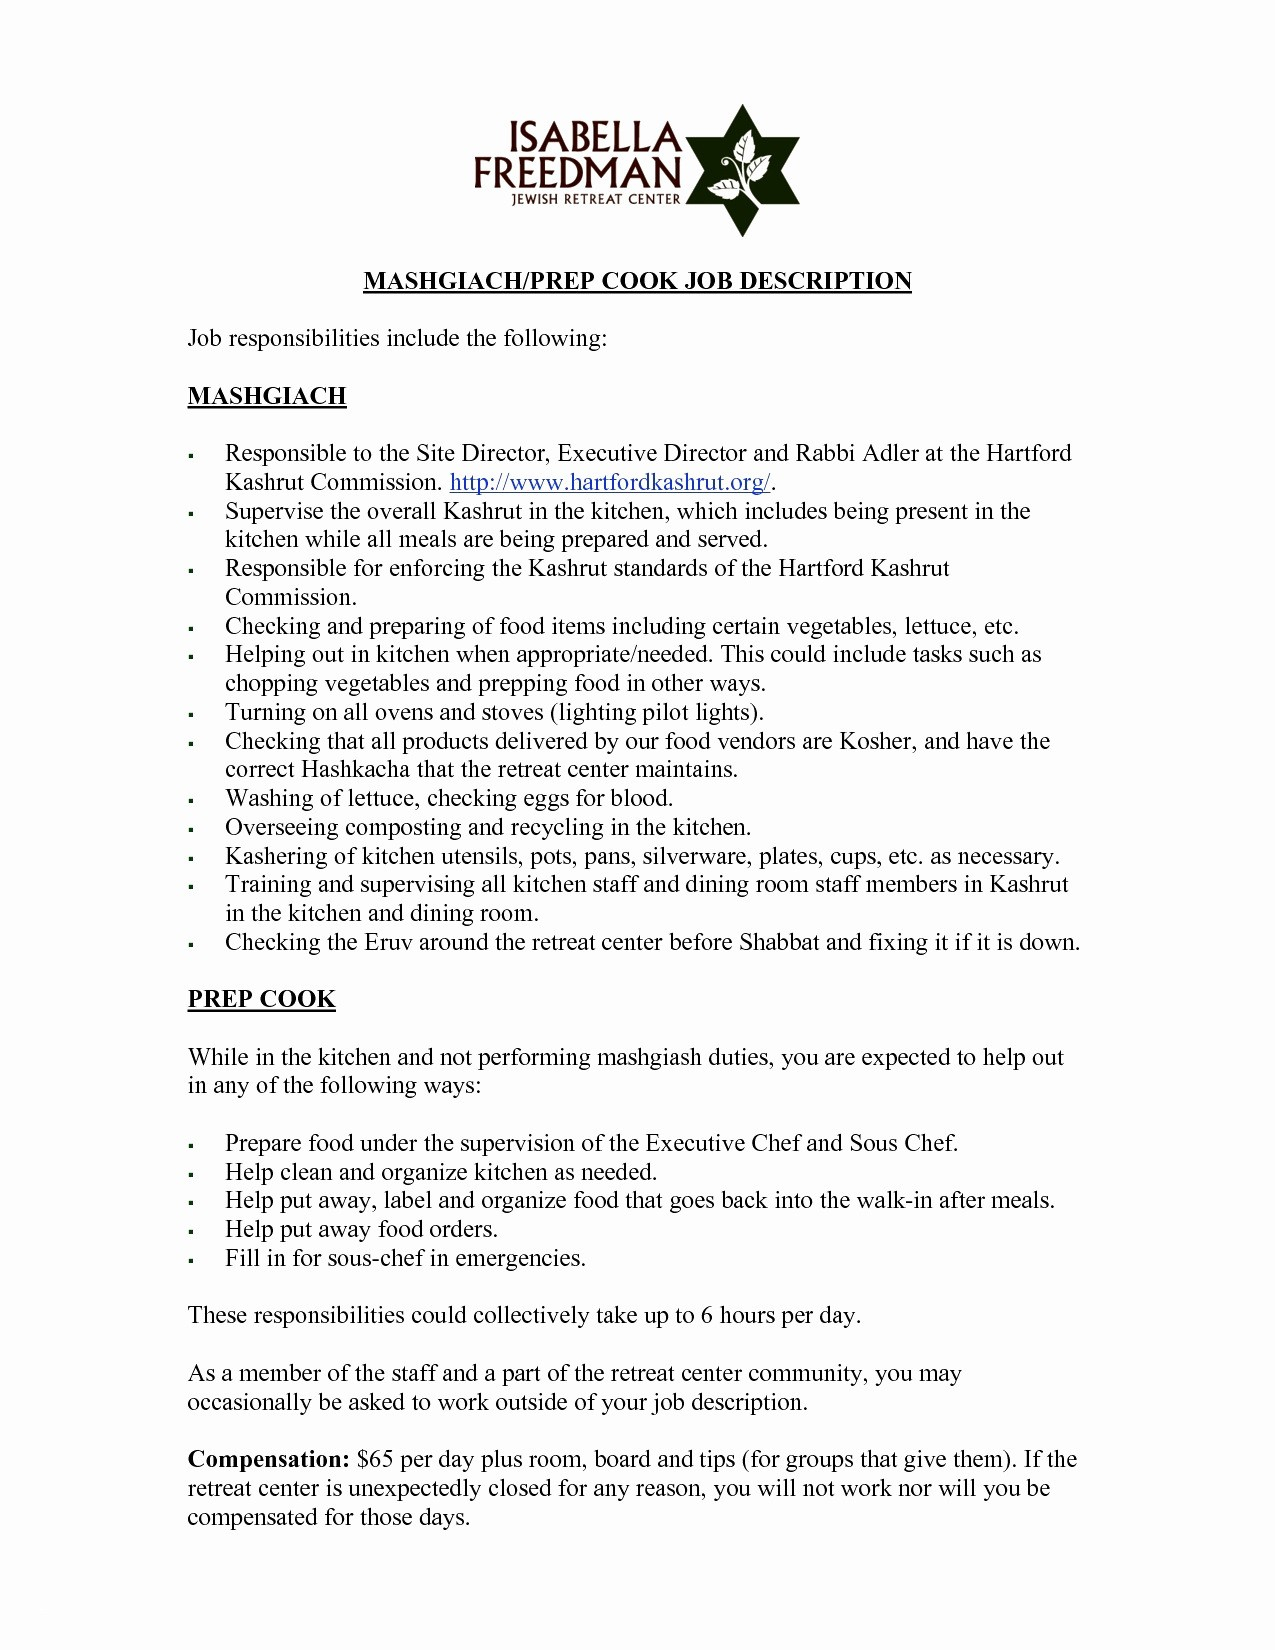 Job Resume Cover Letter Template - Cover Letter Job Sample Fresh Resume Doc Template Luxury Resume and